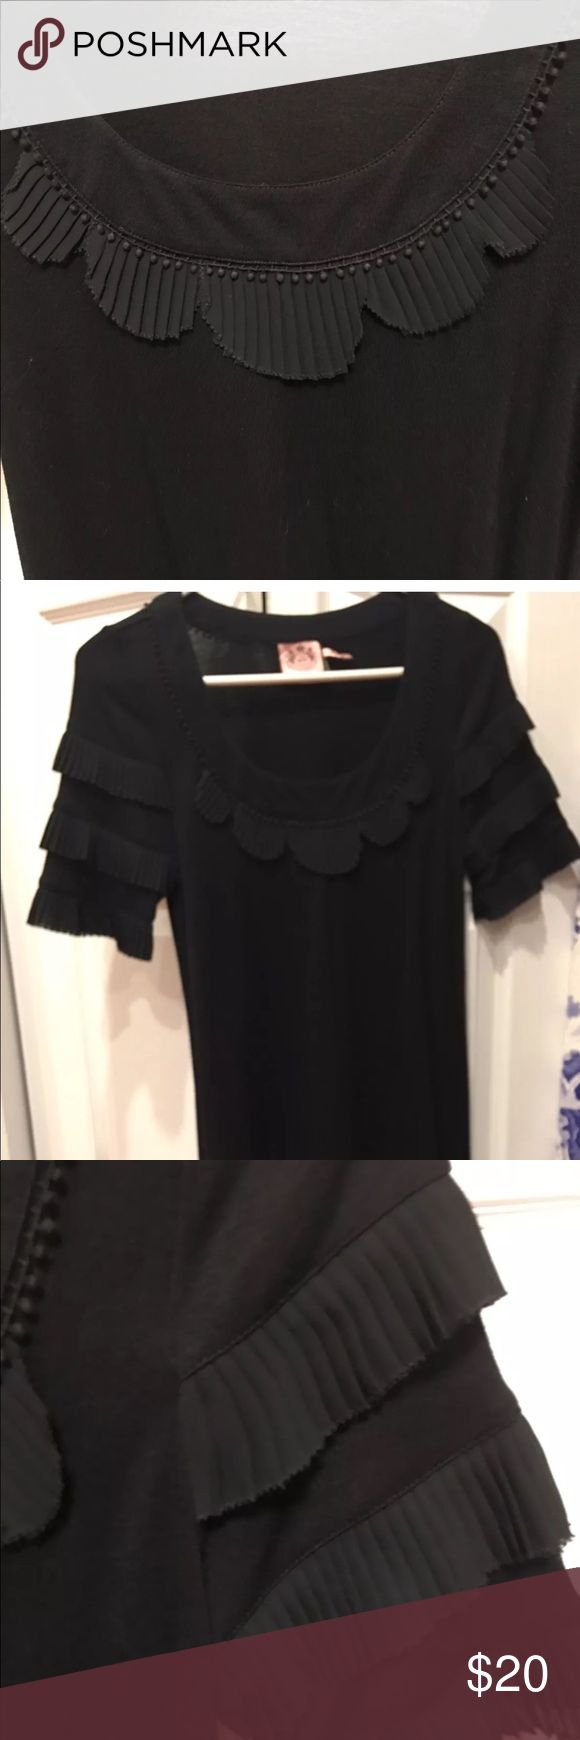 """Juicy Couture little black dress Great shape.  Nice ruffled detail around collar and sleeves. I am 5 7"""" and it hits just slightly above the knee. Really cute! Juicy Couture Dresses"""